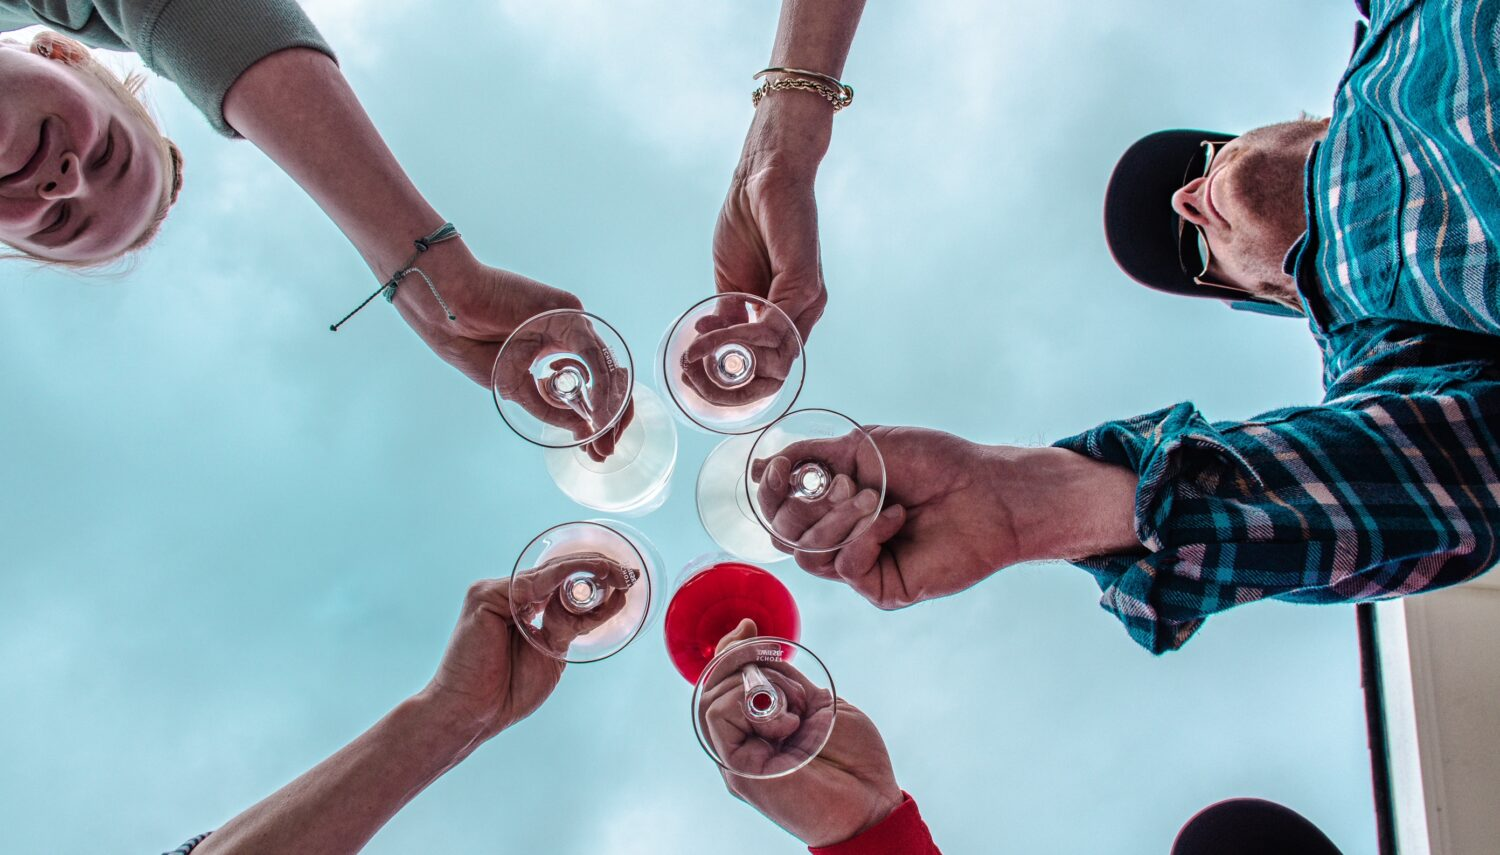 Five hands holding glasses of wine are held together and viewed from below. The background is a pale blue sky.